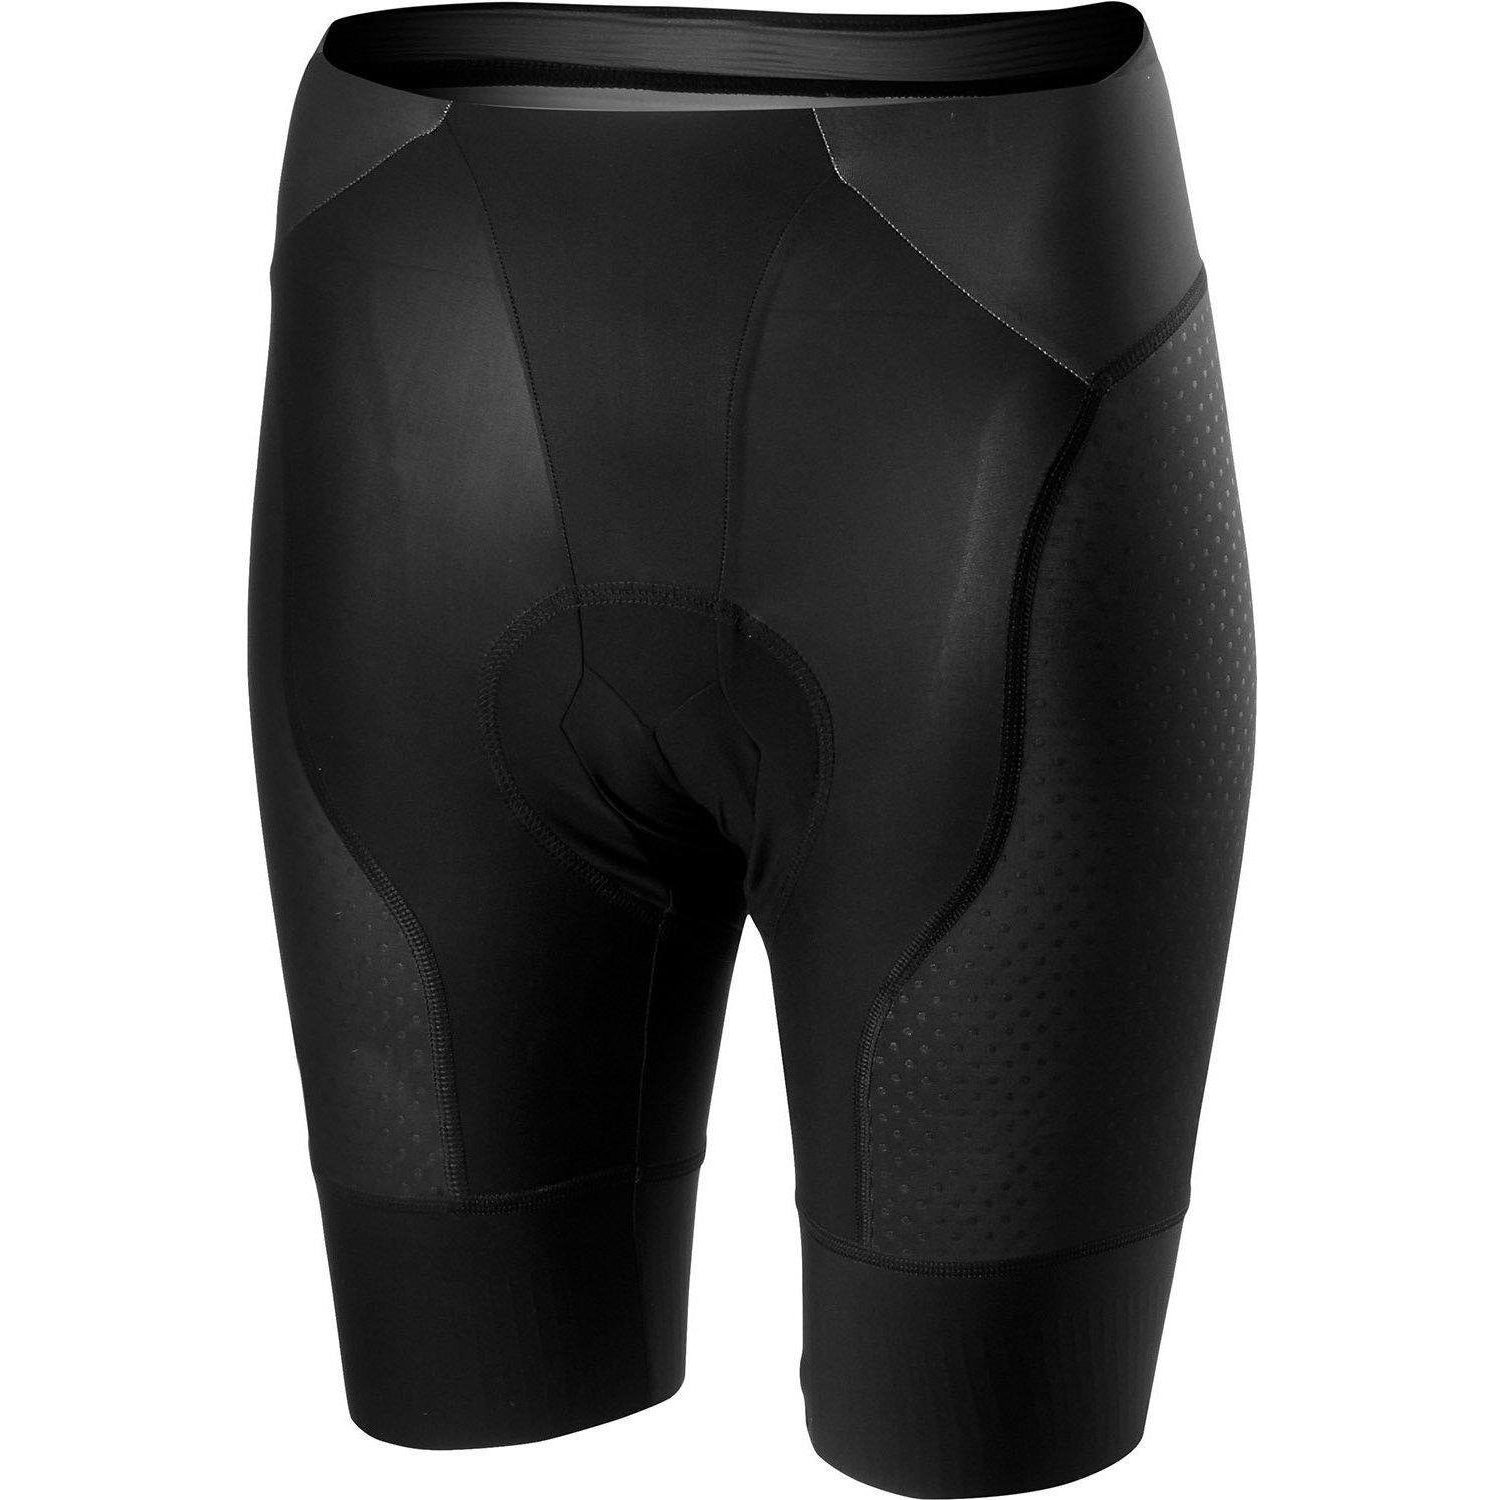 Castelli-Castelli Free Aero Race 4 Women's Shorts-Black-XS-CS190450101-saddleback-elite-performance-cycling